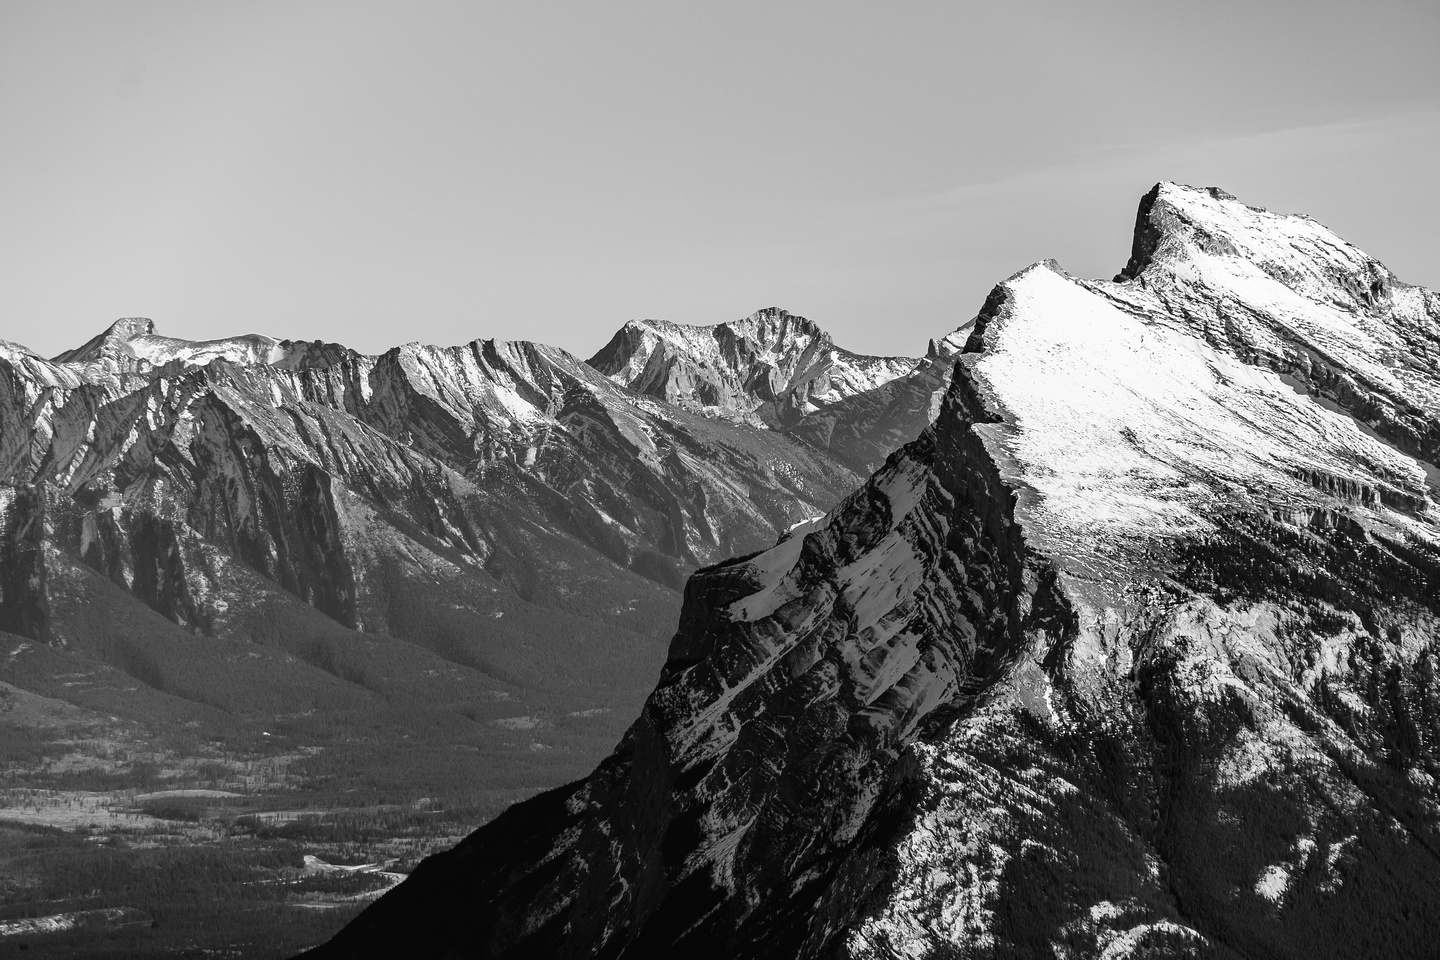 Dramatic shot past Mount Rundle.